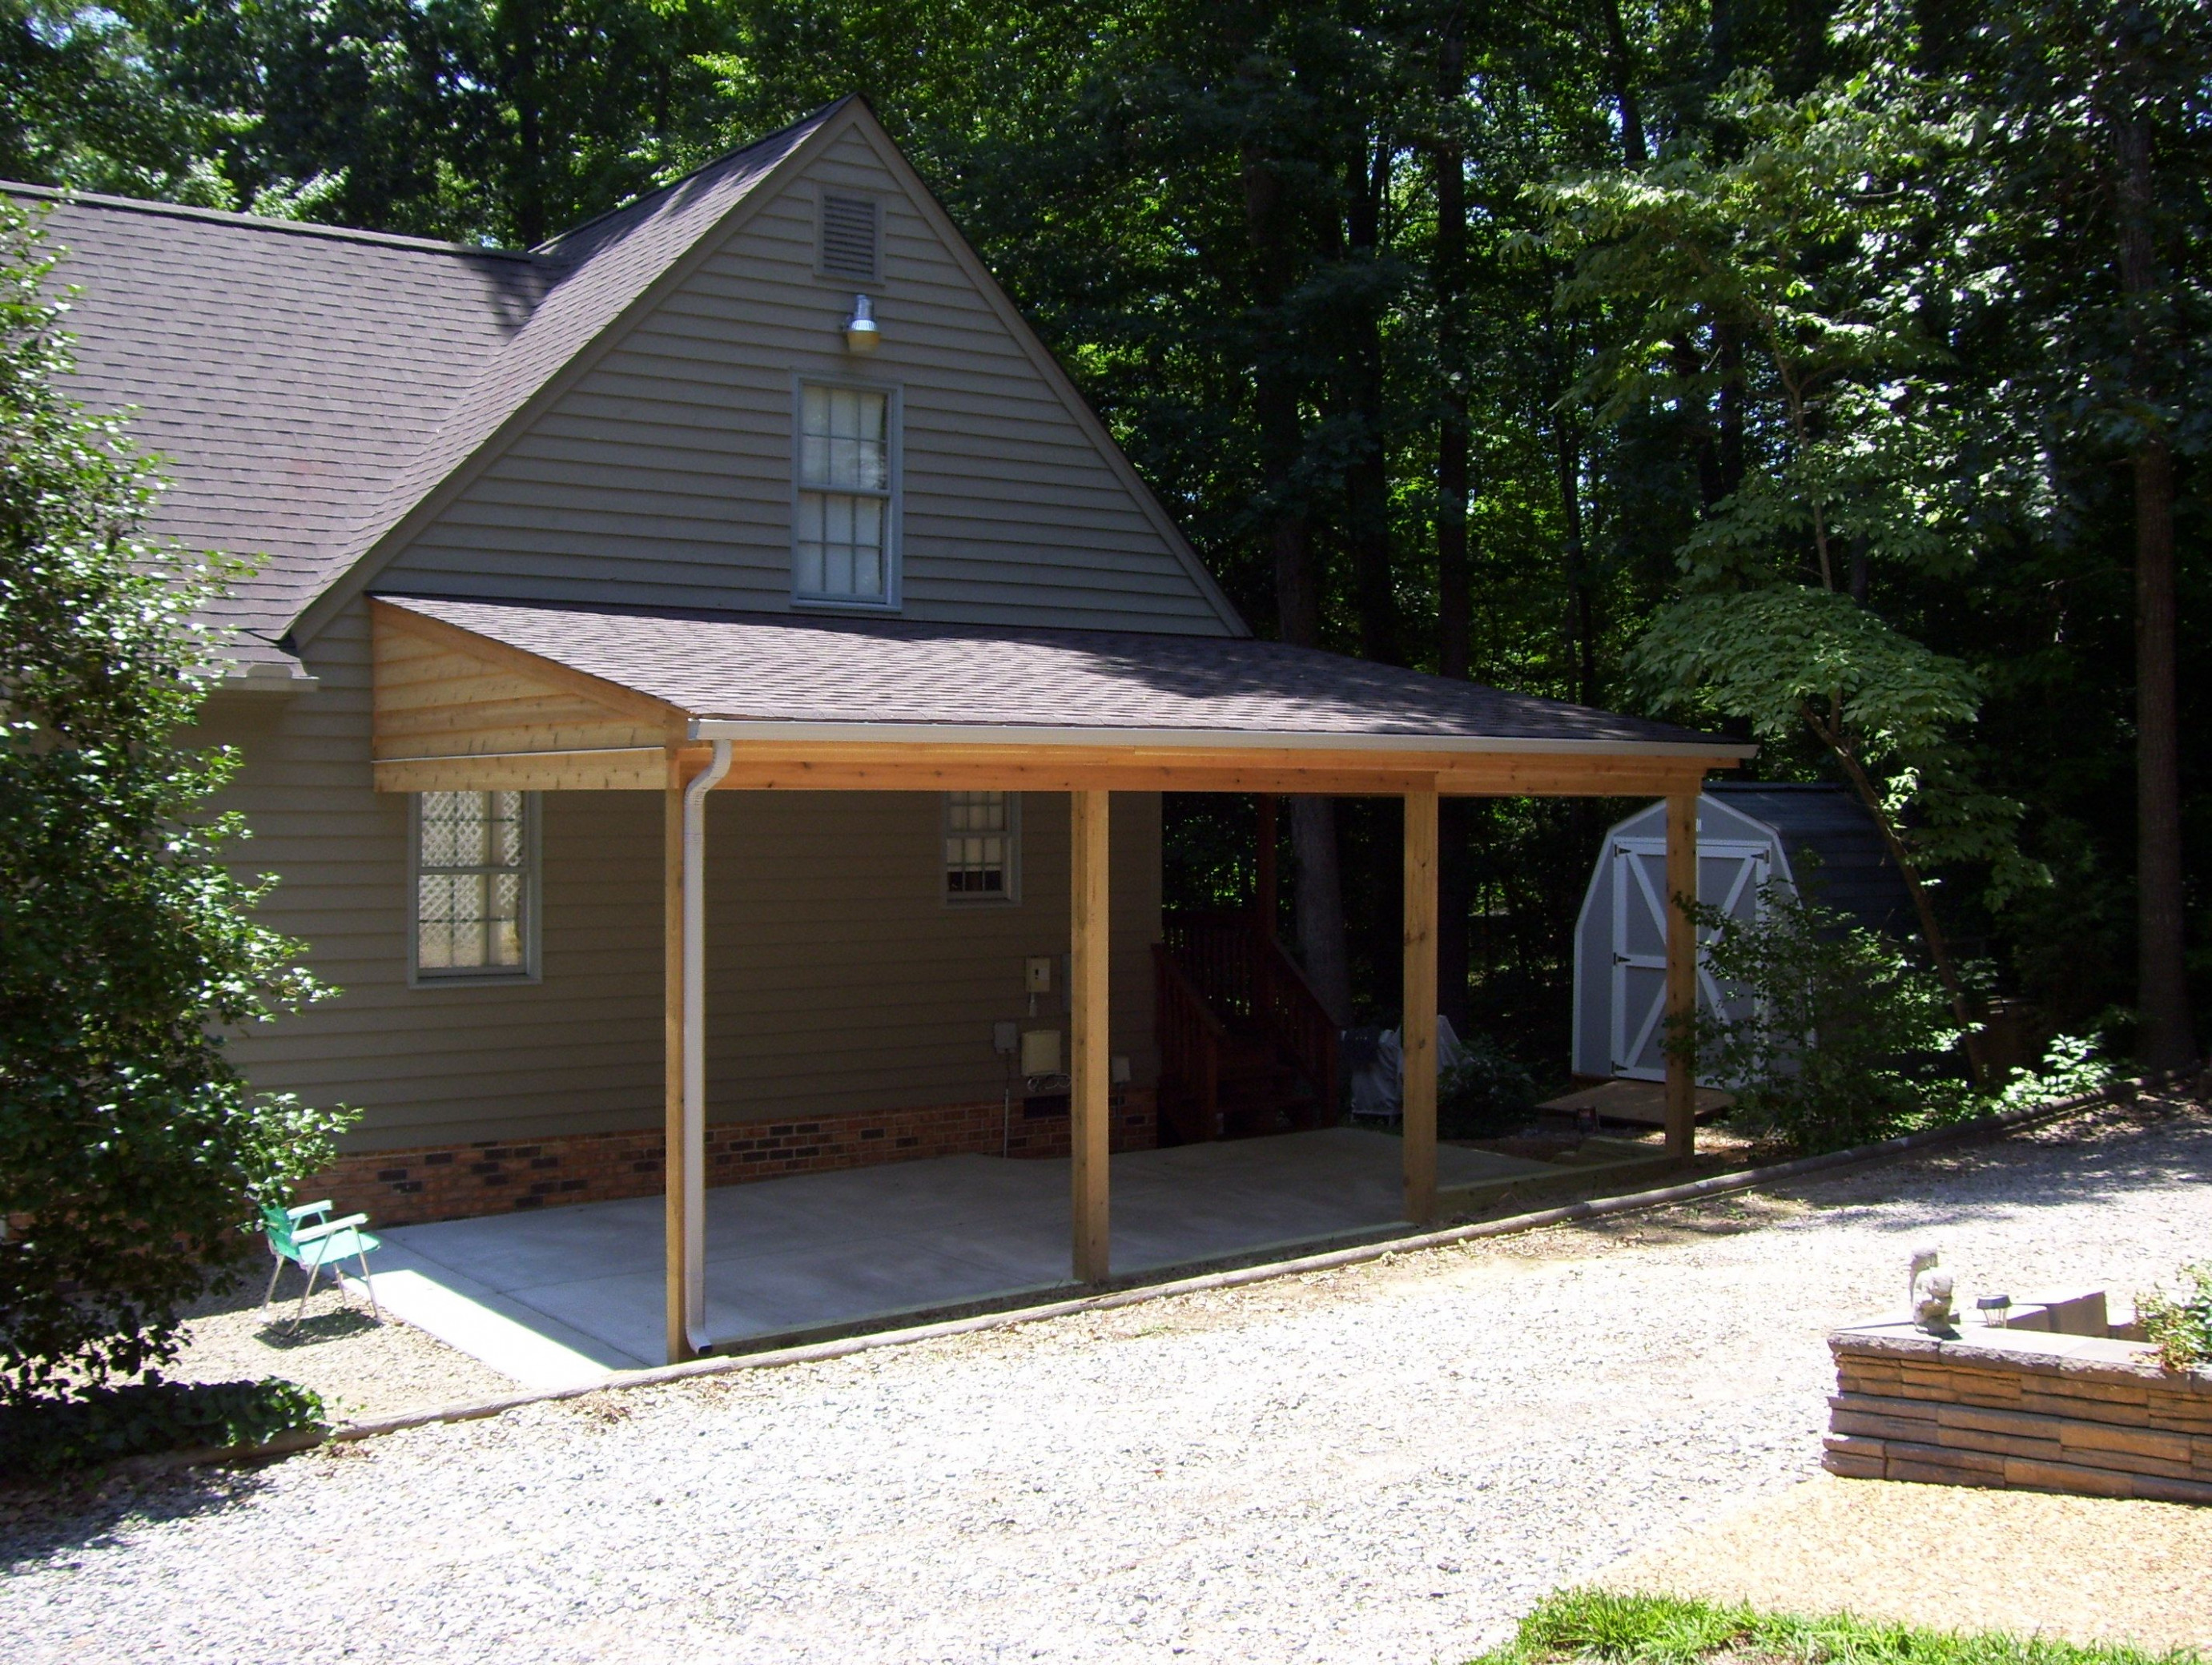 Attached Carport Photos | House Remodel In 12 | Carport ..